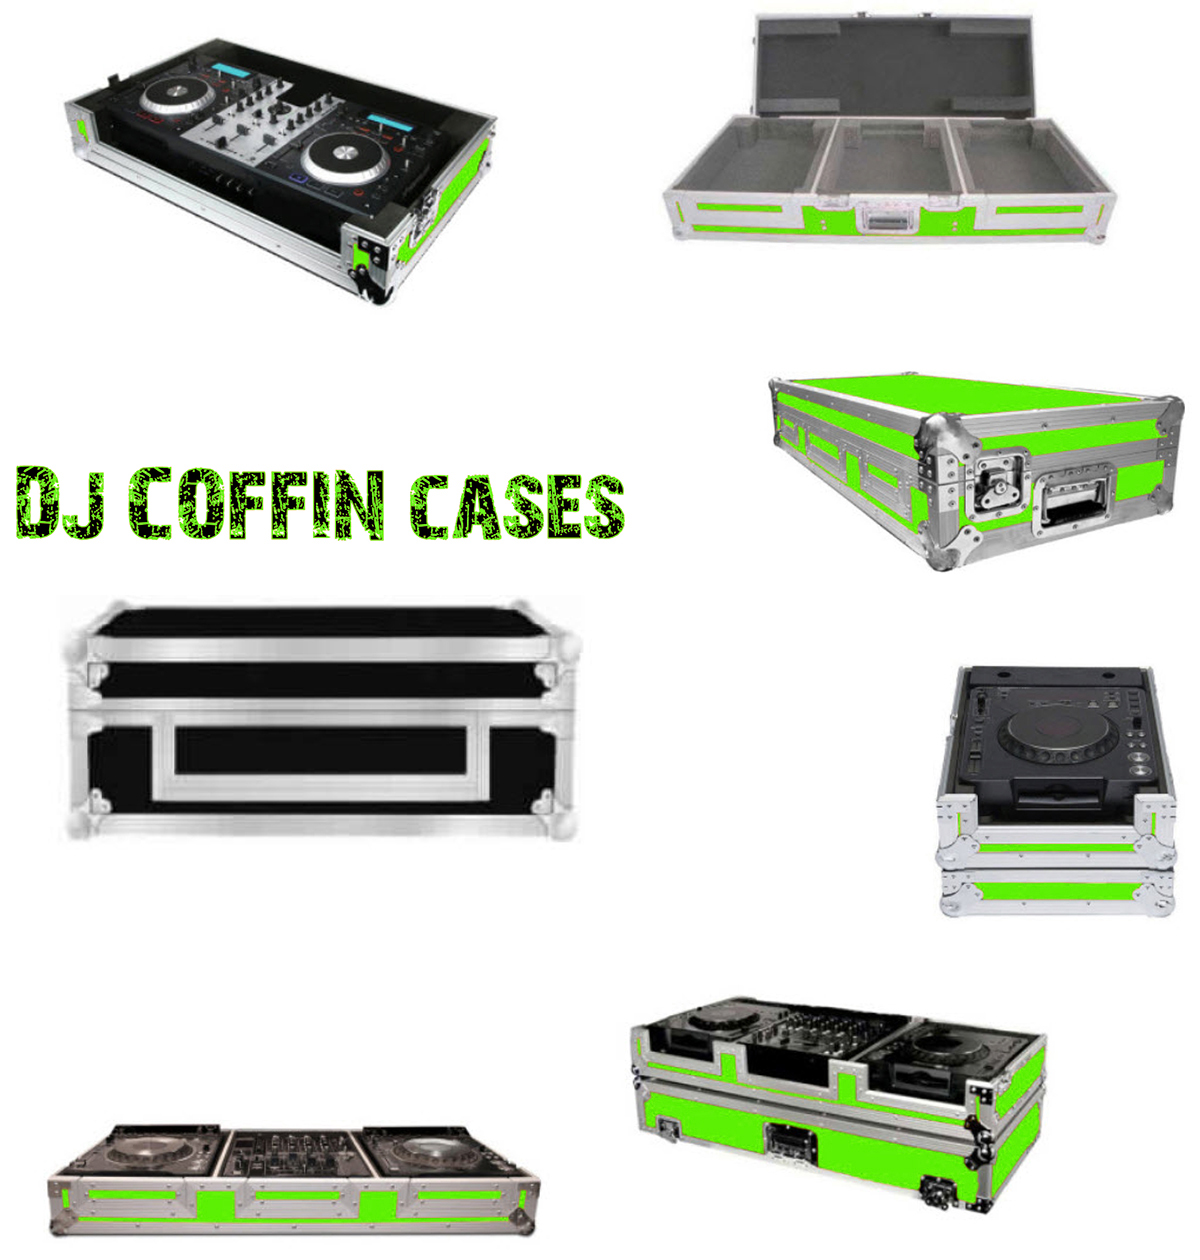 dj-coffin1.jpg